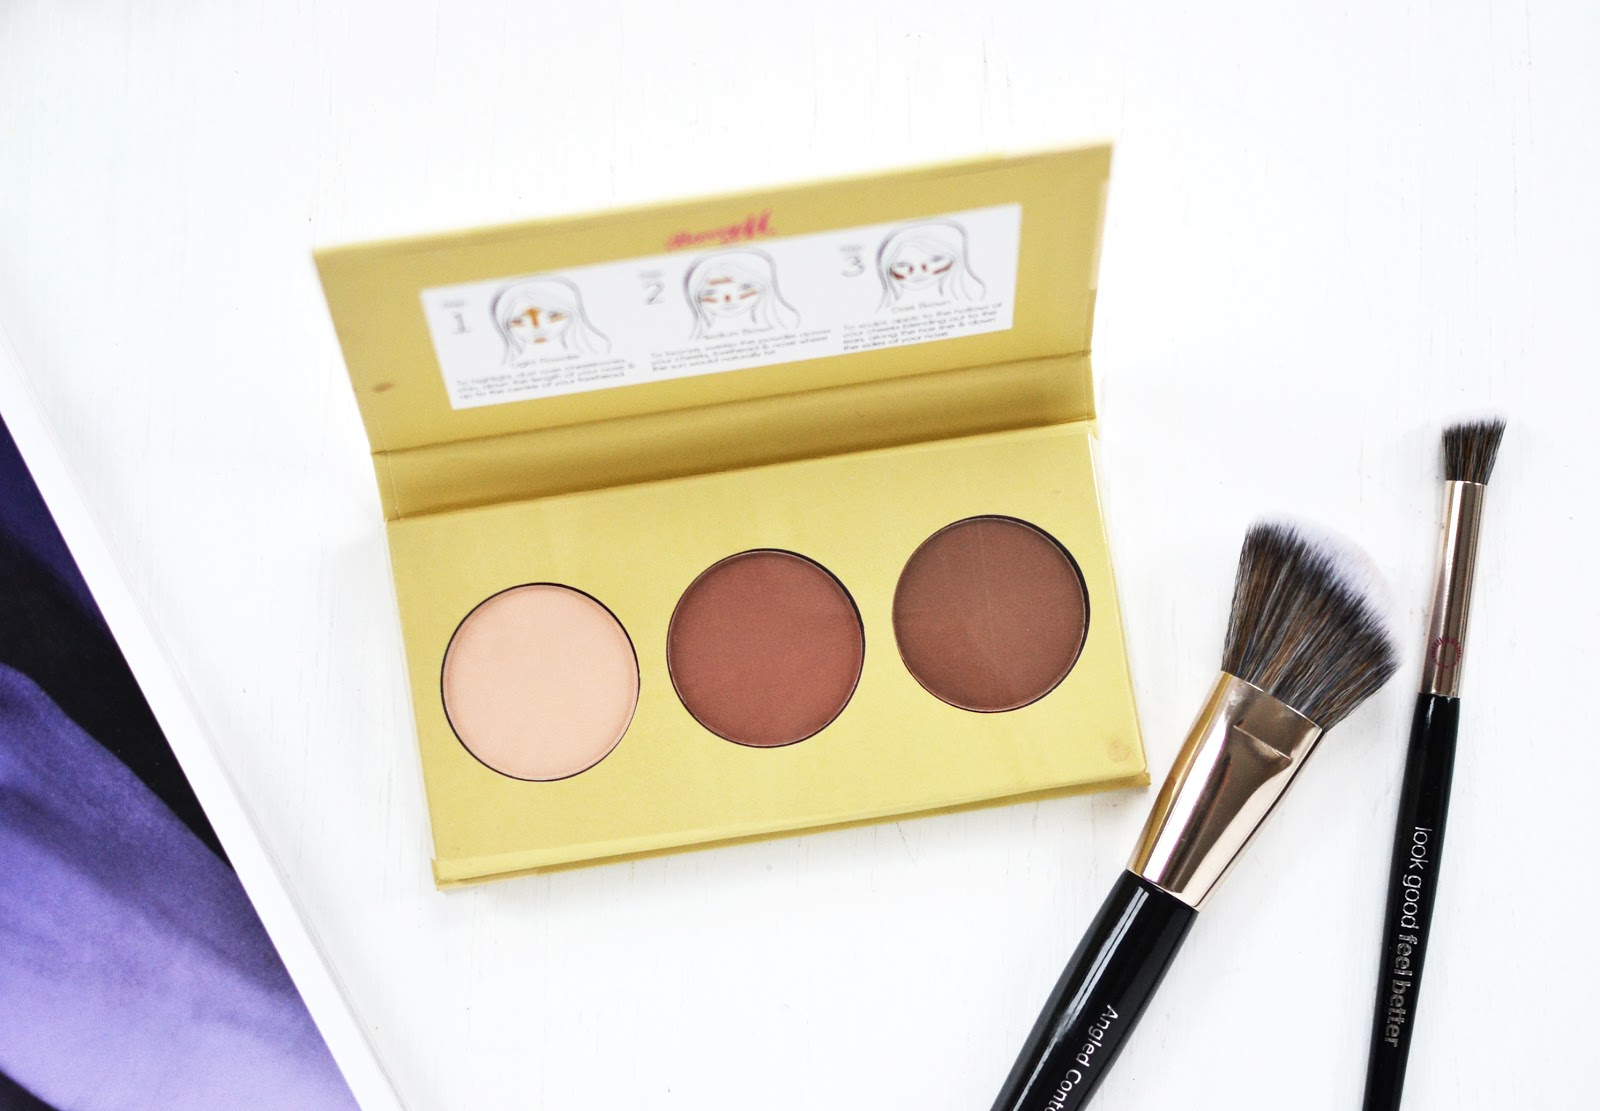 Barry M Flawless Chisel Cheeks Contour Kit